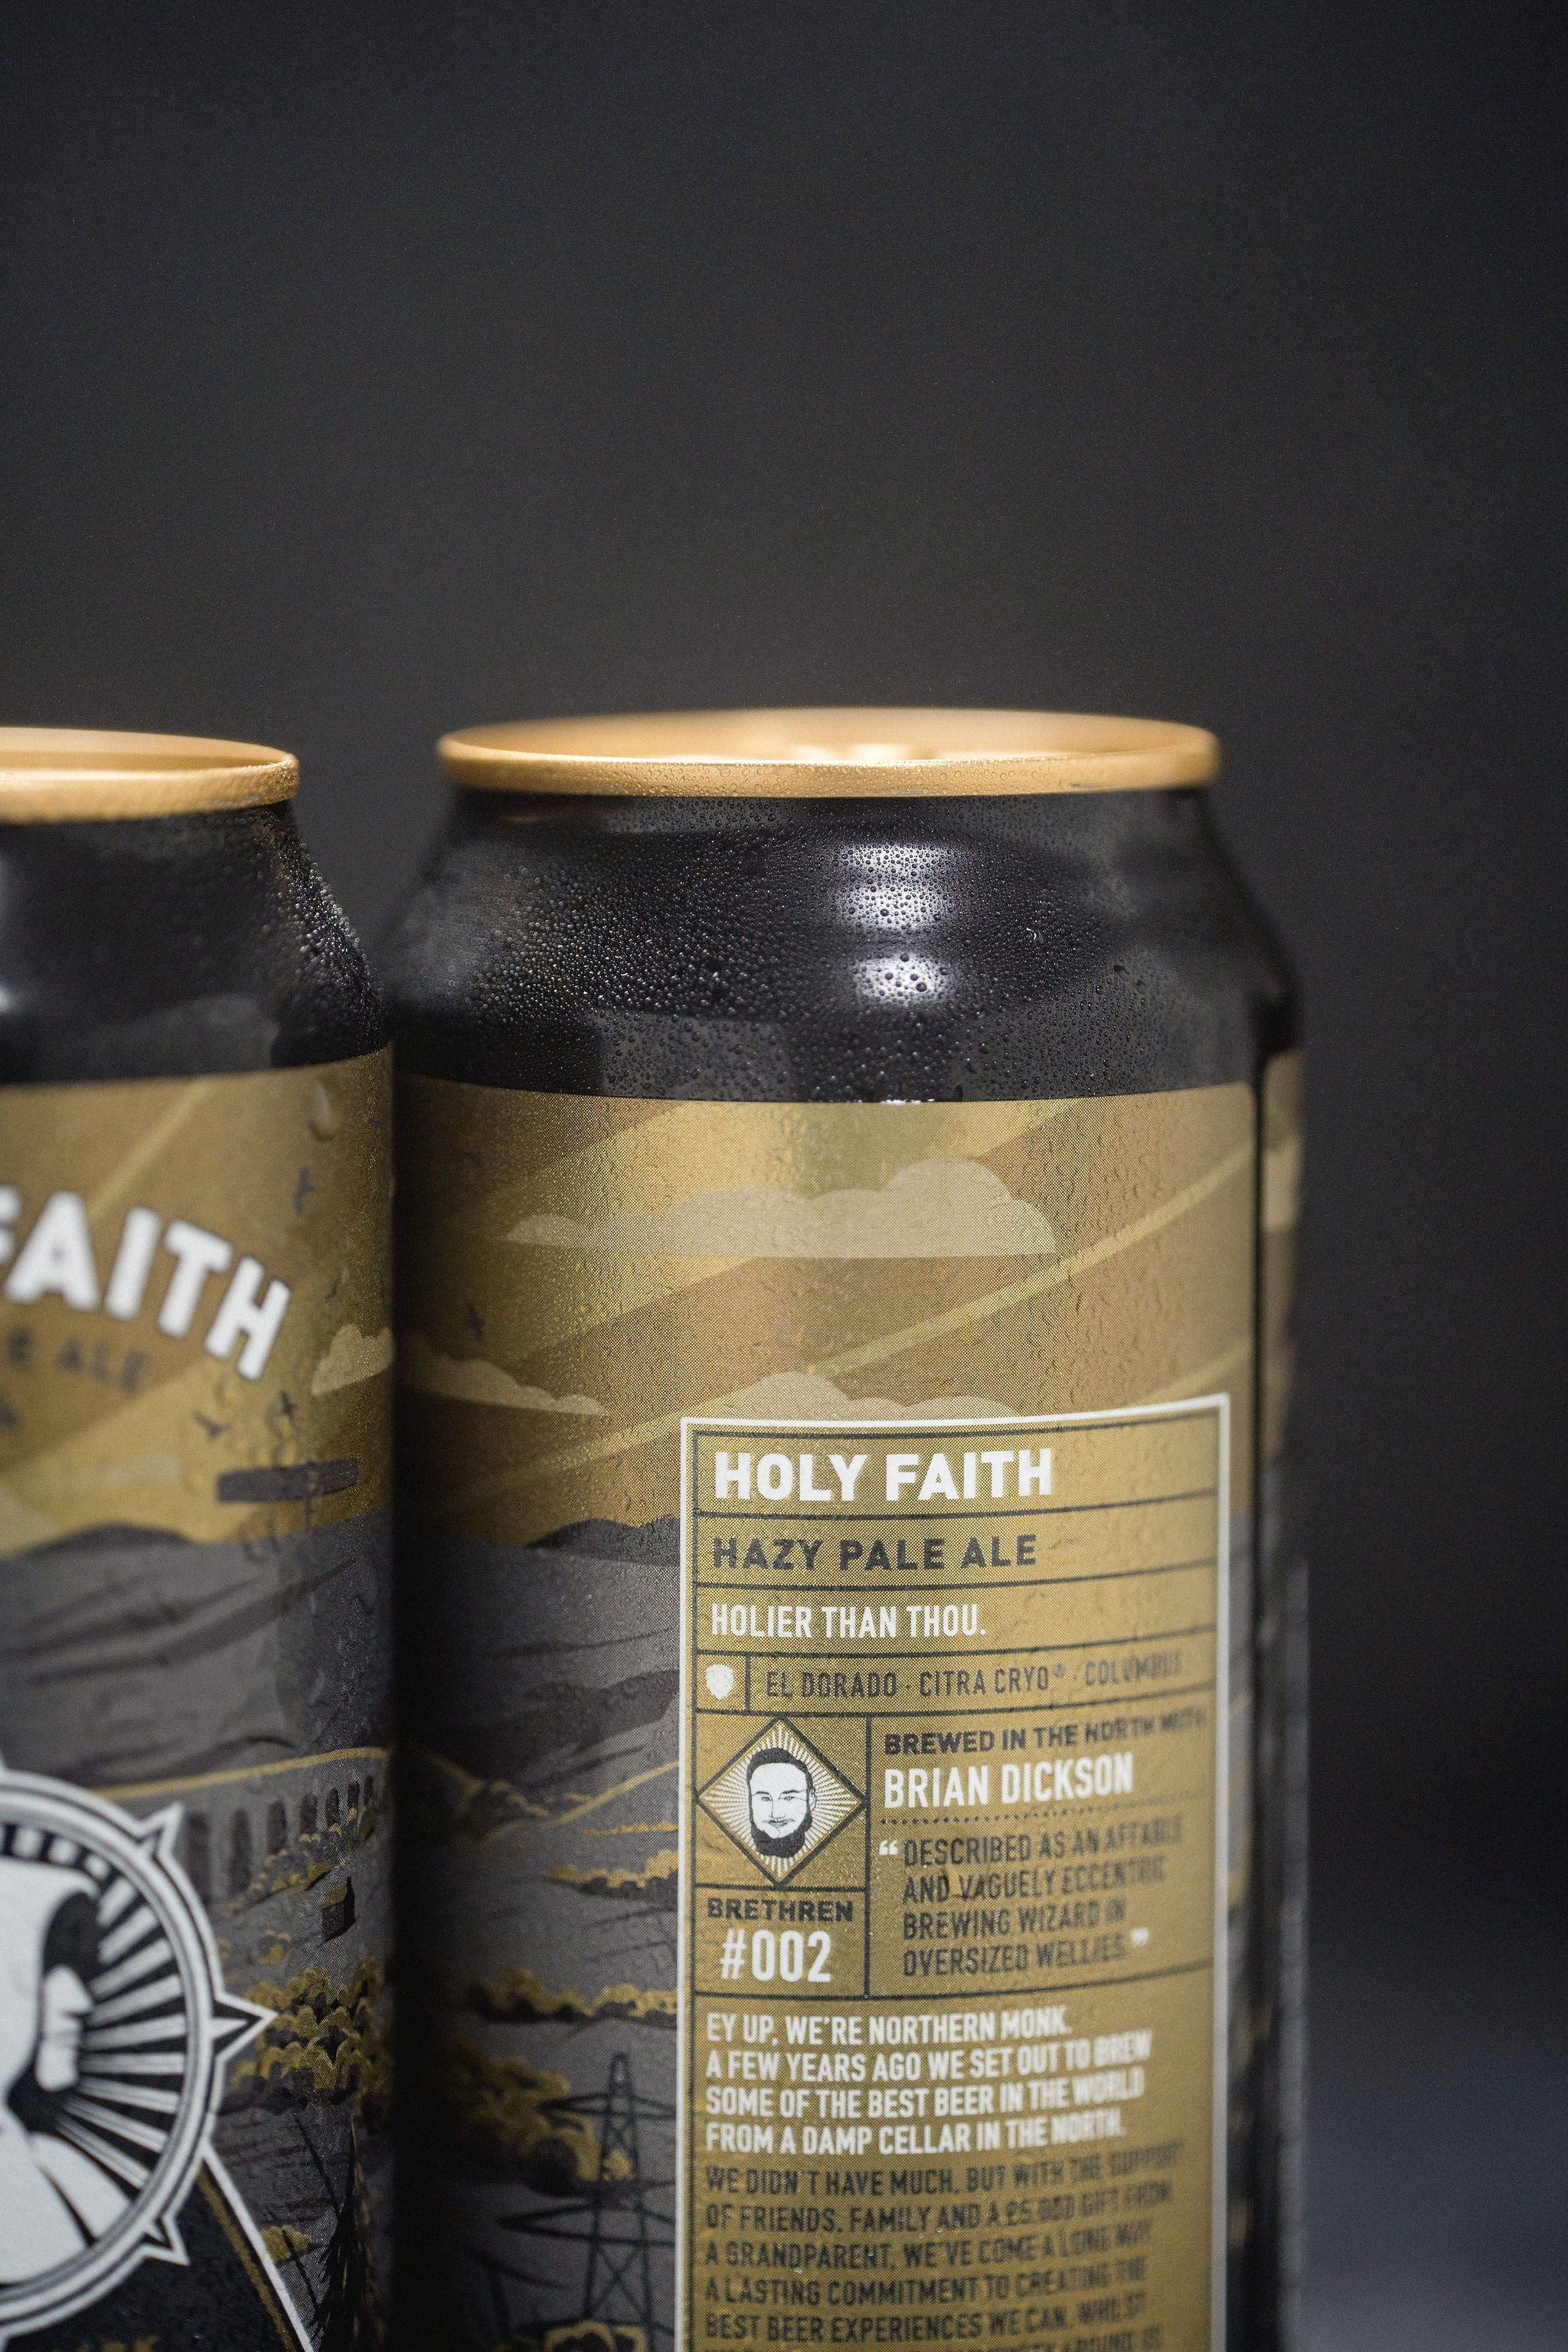 HOLY FAITH // ALCOHOL FREE HAZY PALE ALE // 6 PACK